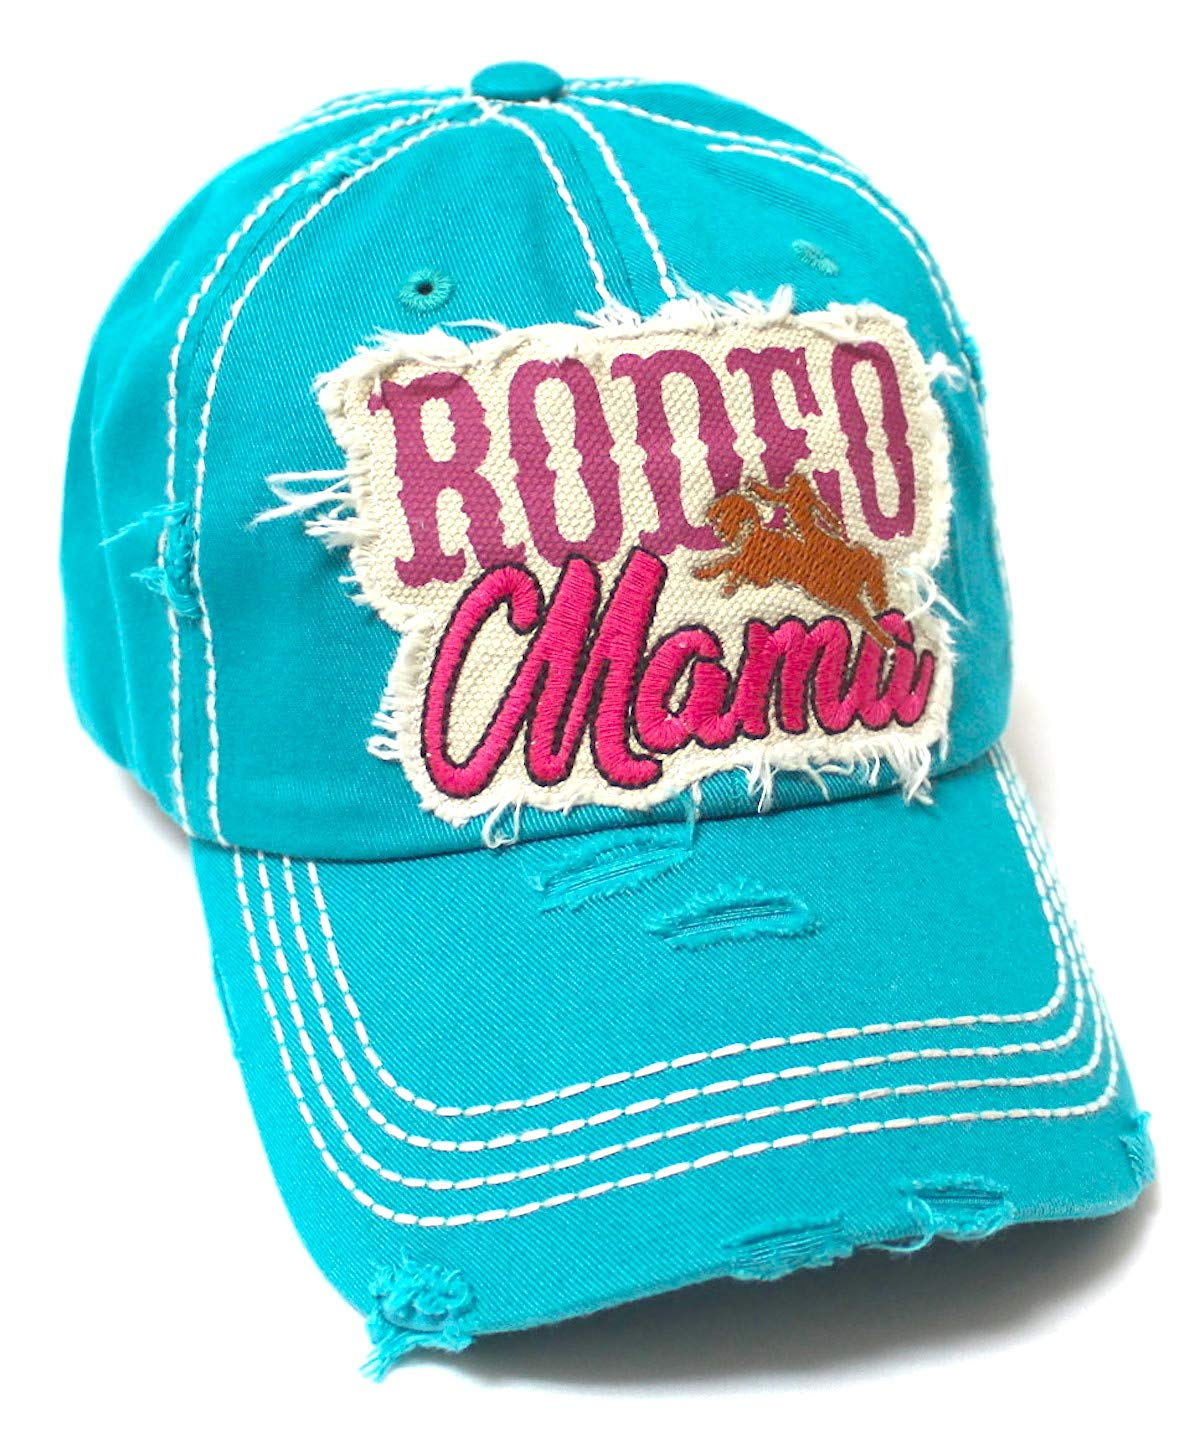 Classic Country Western Ballcap Rodeo Mama Monogram Patch Embroidery Adjustable Baseball Hat, Turquoise - Caps 'N Vintage